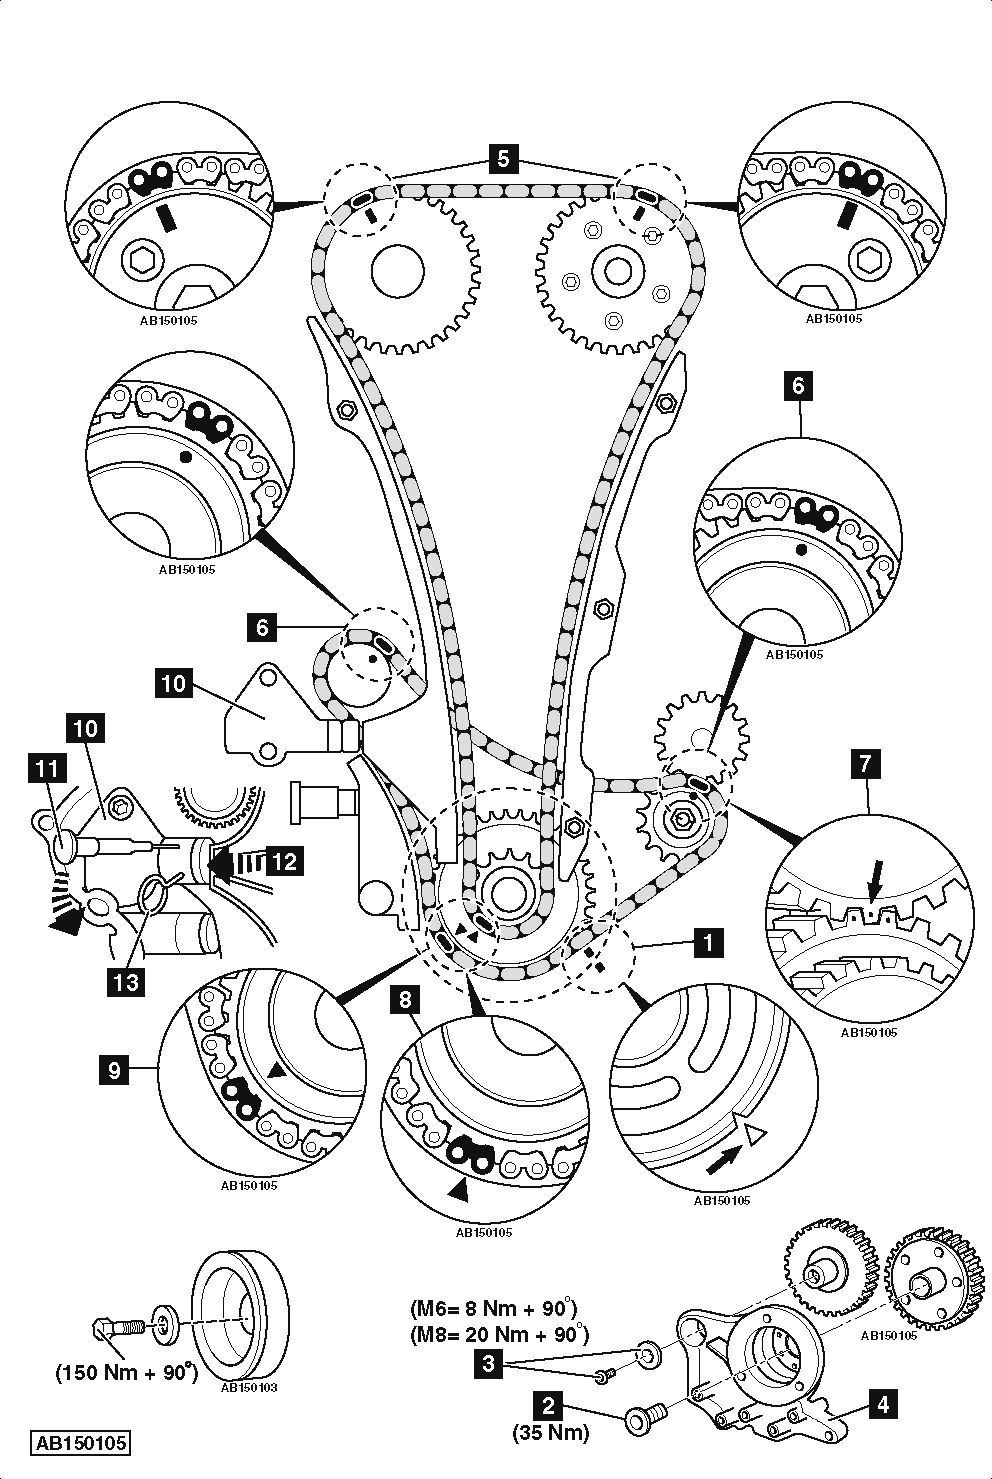 2012 chevy traverse engine diagram within chevy wiring and engine